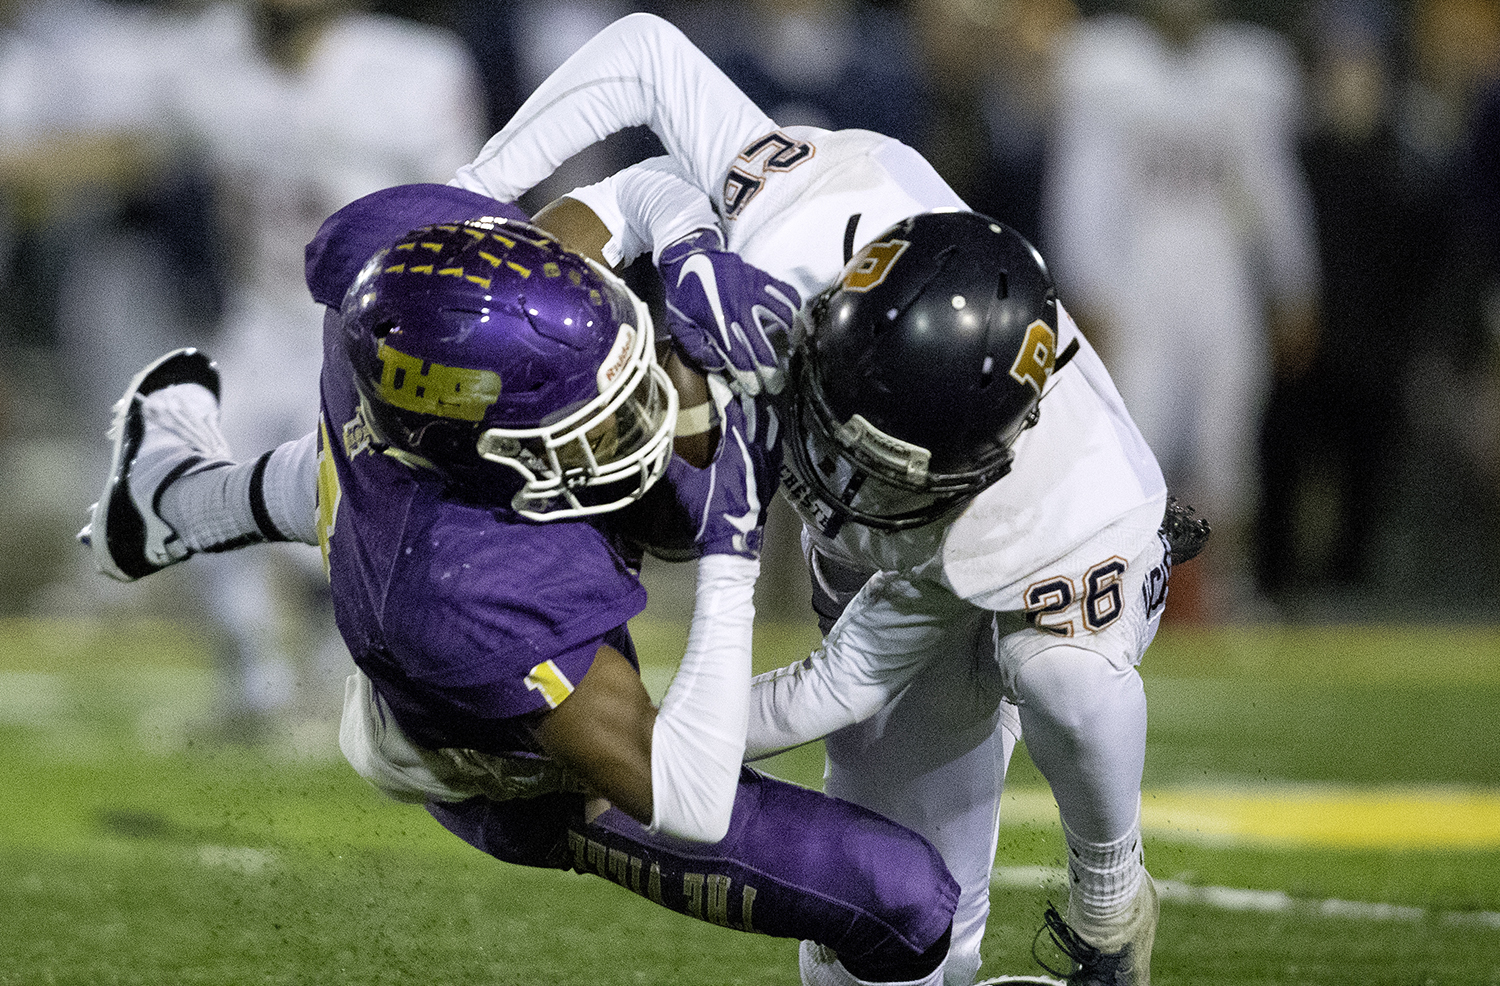 Taylorville's Yemi Obdugbesan makes a catch in front of Rochester's Jack Bruso during the Class 4A quarterfinals in Taylorville Saturday, Nov. 10, 2018. [Ted Schurter/The State Journal-Register]